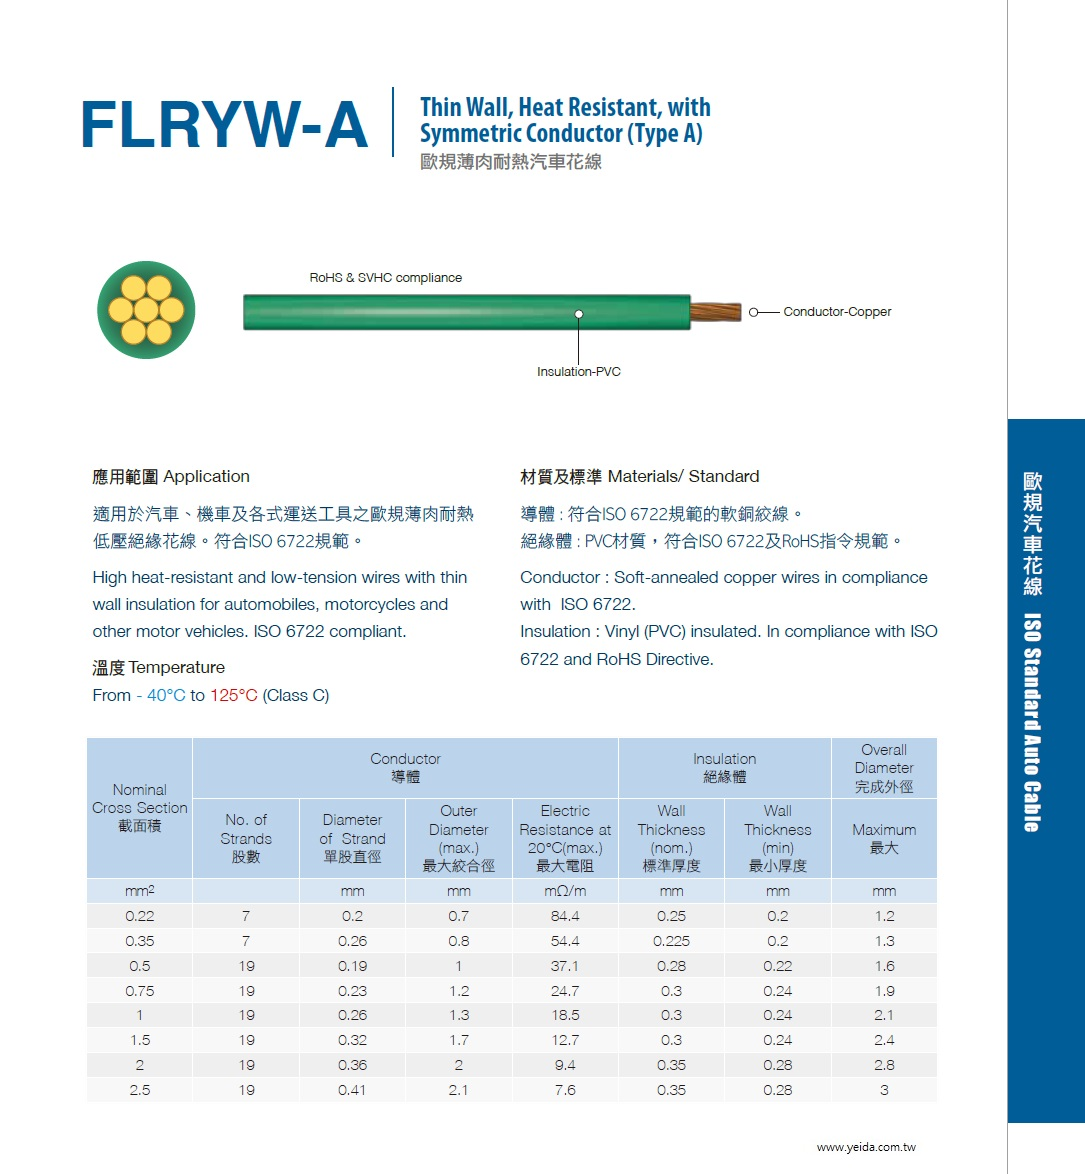 FLRYW-A Thin Wall, Heat Resistant, with Symmetric Conductor (Type A) 符合ISO 6722 PVC材質,符合ISO 6722及RoHS指令規範歐規薄肉耐熱汽車花線產品圖